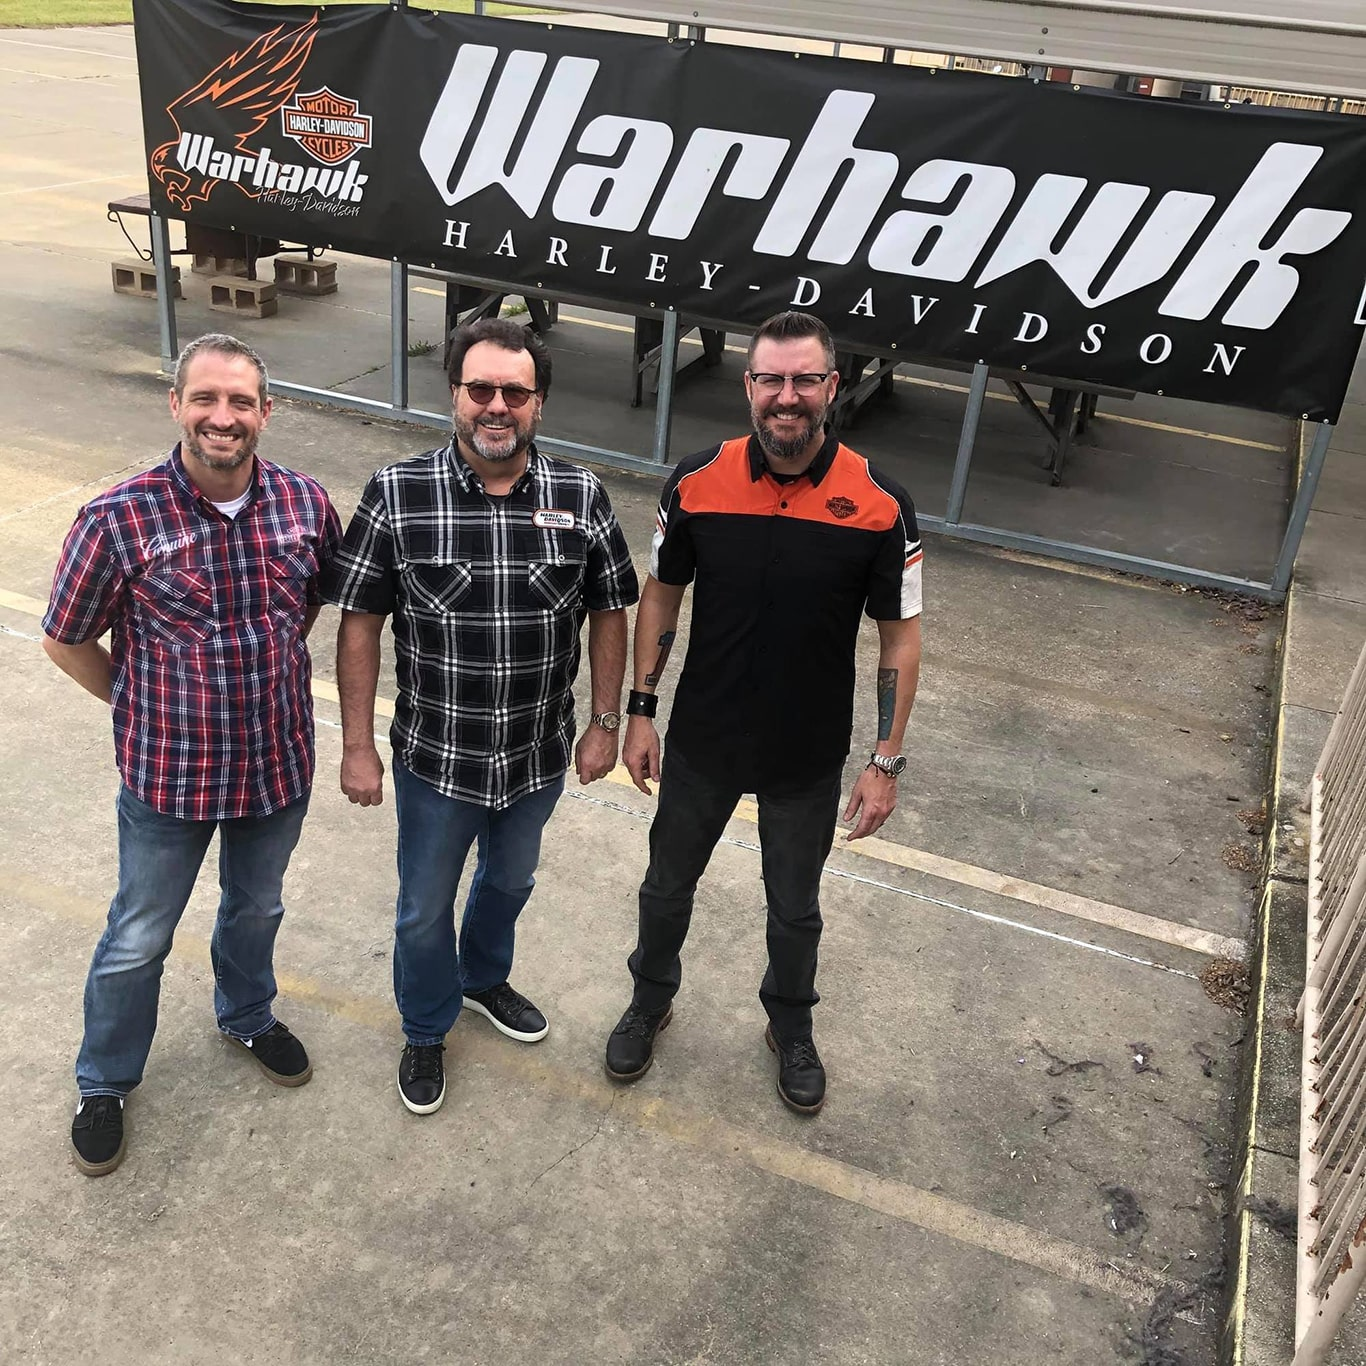 Image of Warhawk Harley Davidson staff members